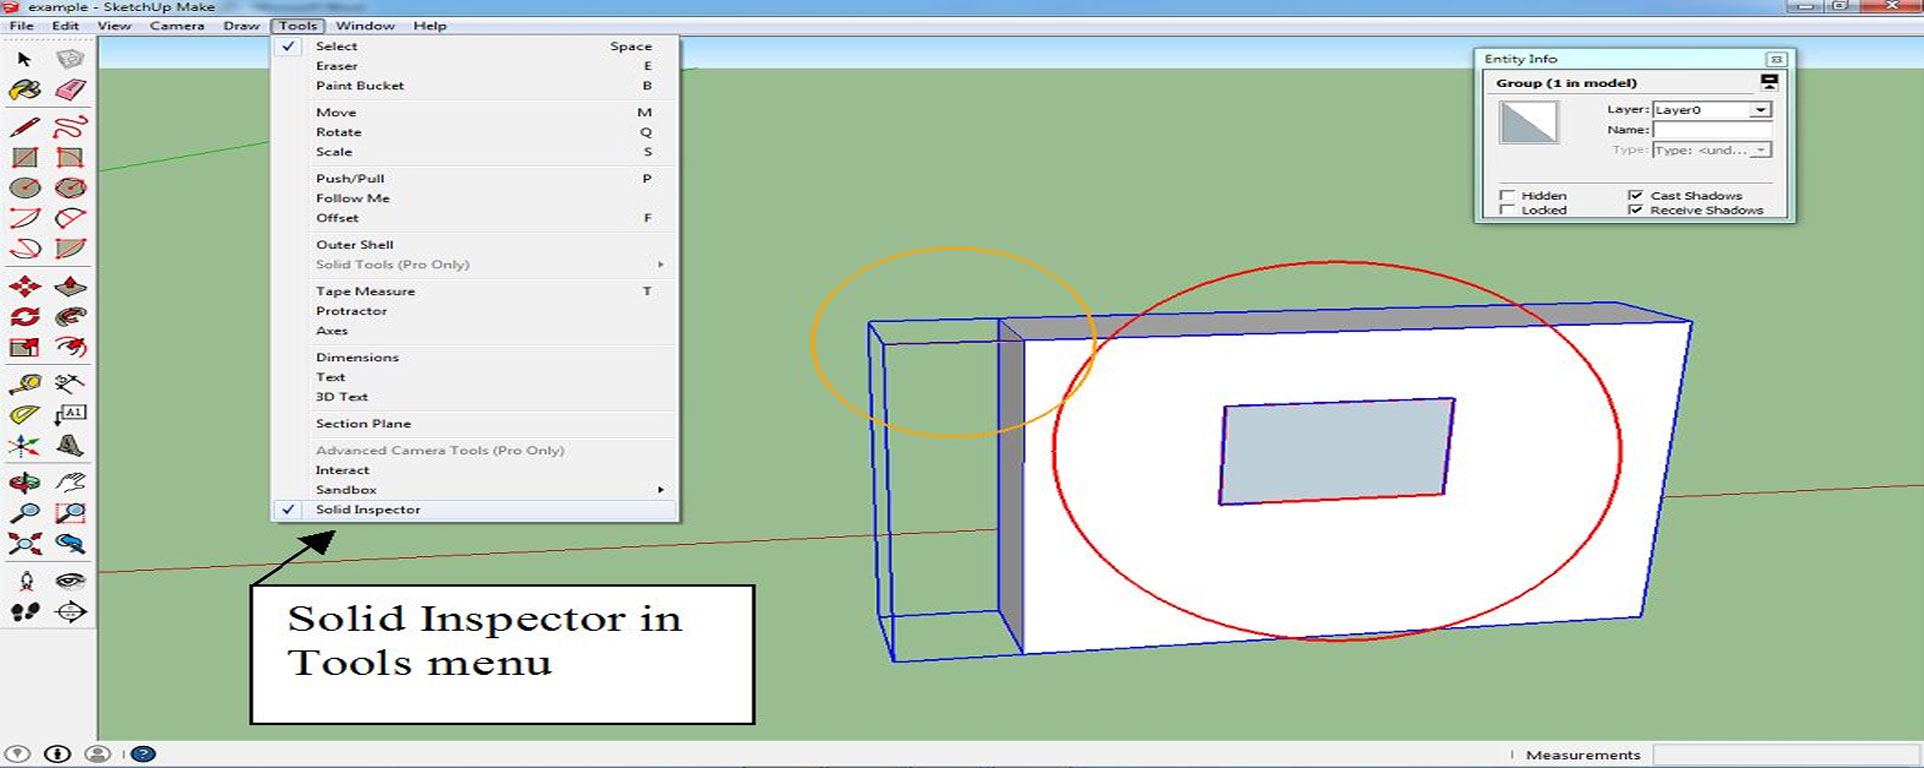 How to set savng time sketchup